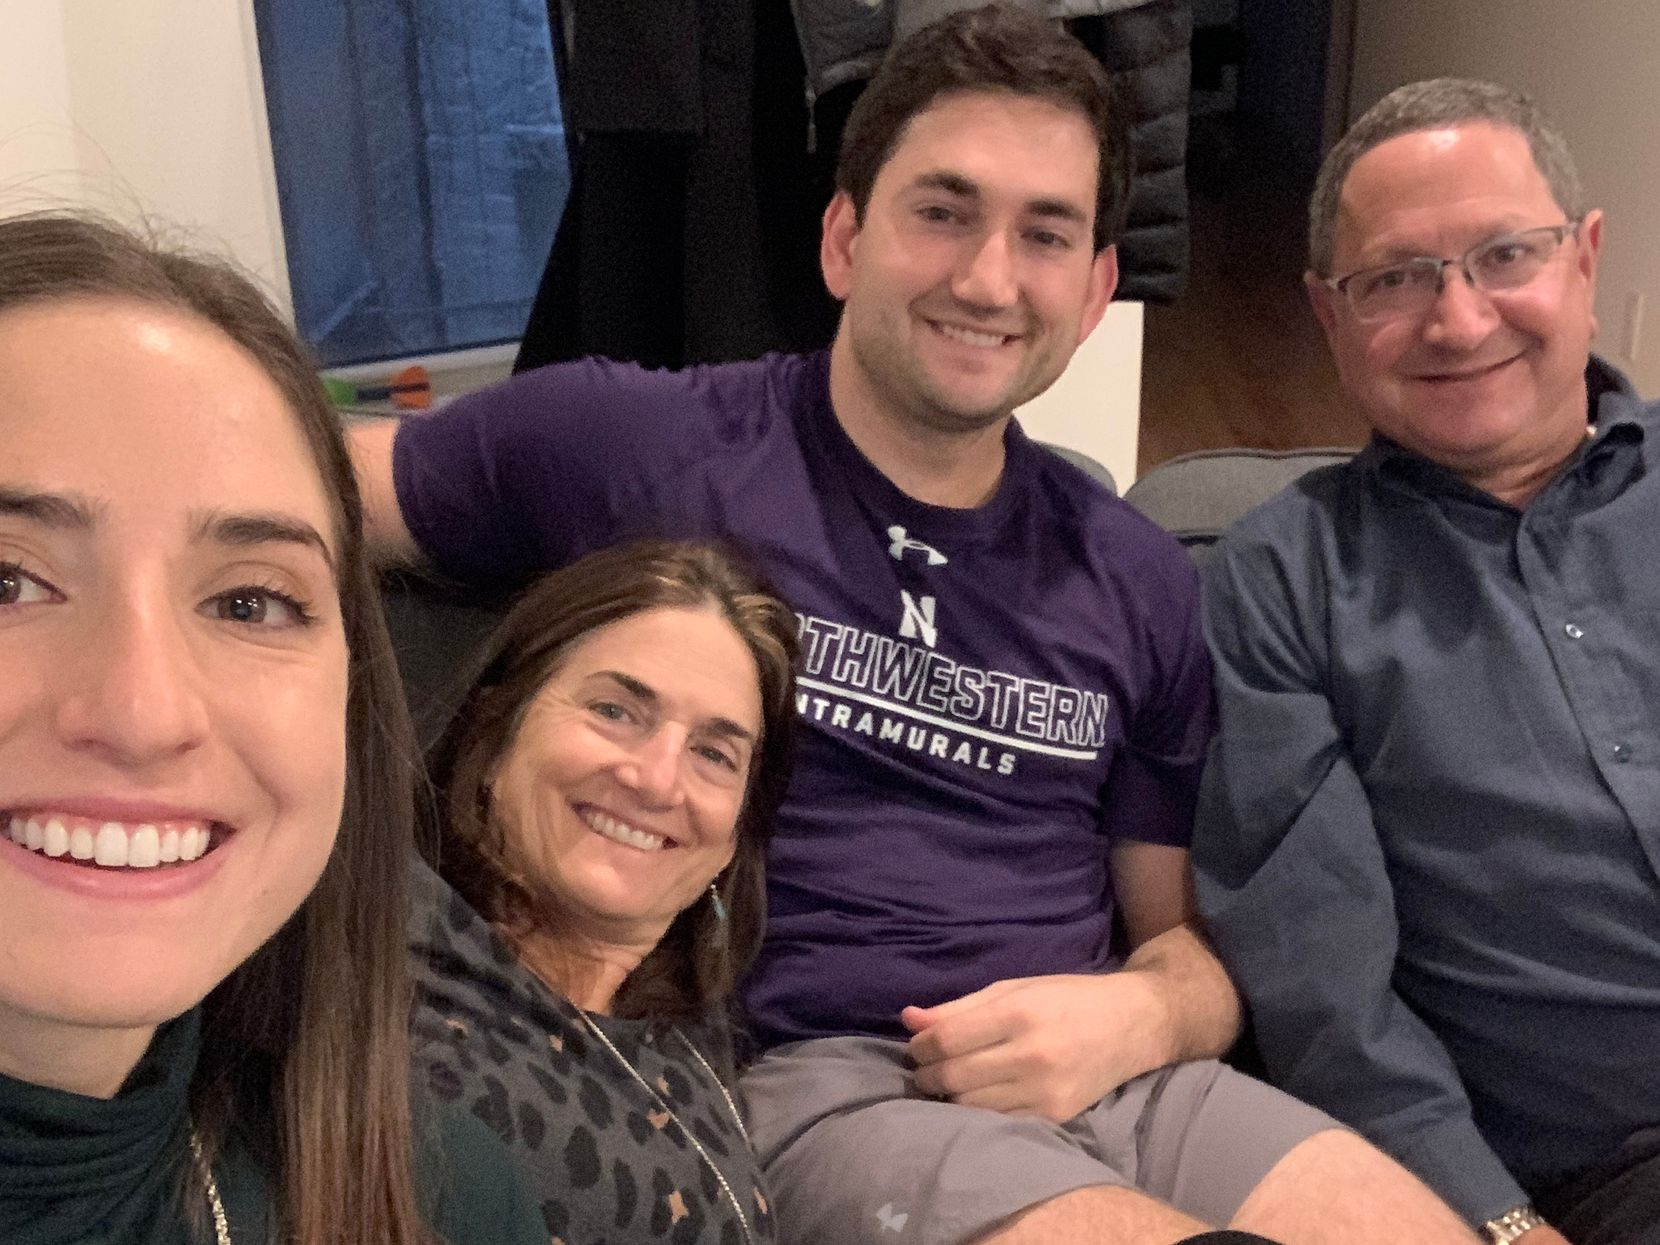 Rachel Hersh (left) is shown with her mom, Julie, brother Daniel, and dad, Ken, in 2019 when Ken and Julie visited their children, who live and work in New York. The selfie was taken by Rachel.